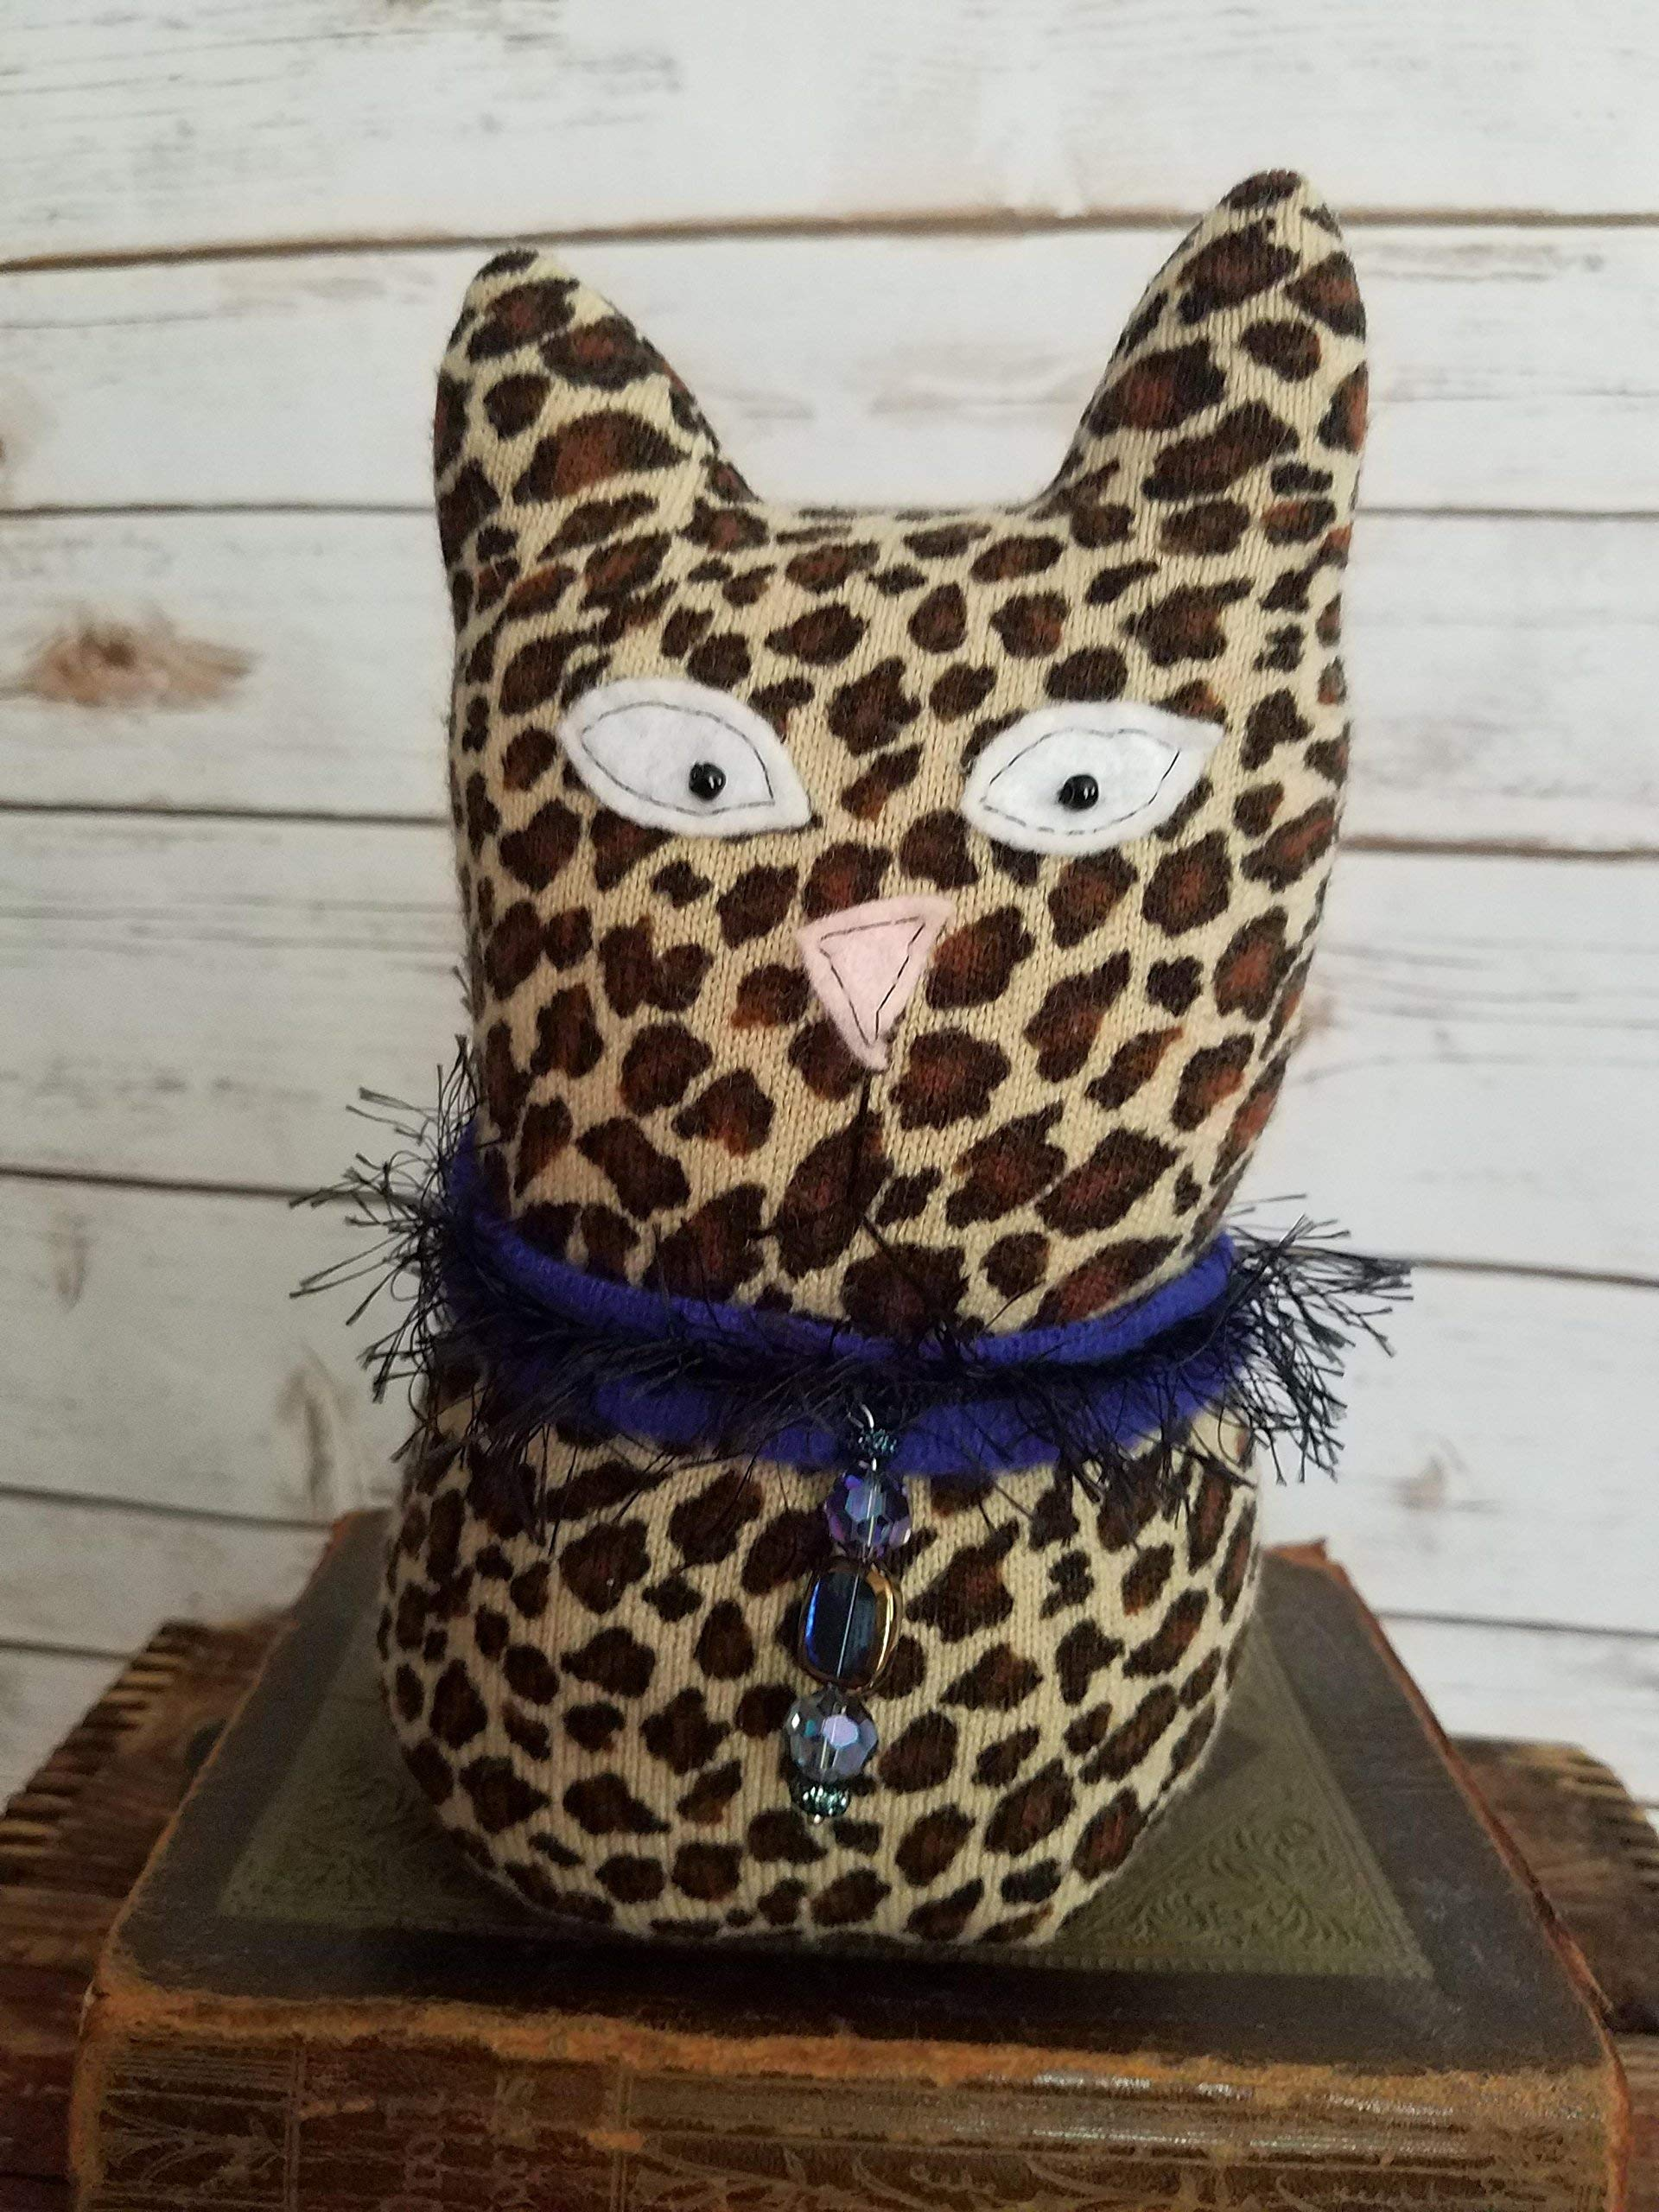 9'' Tall Ragamuffin Ugly Sweater Handmade Kitty Cat Art Doll Leopard Stuffed Animal Cat Lovers Gift by Scaredy Cat Primitives